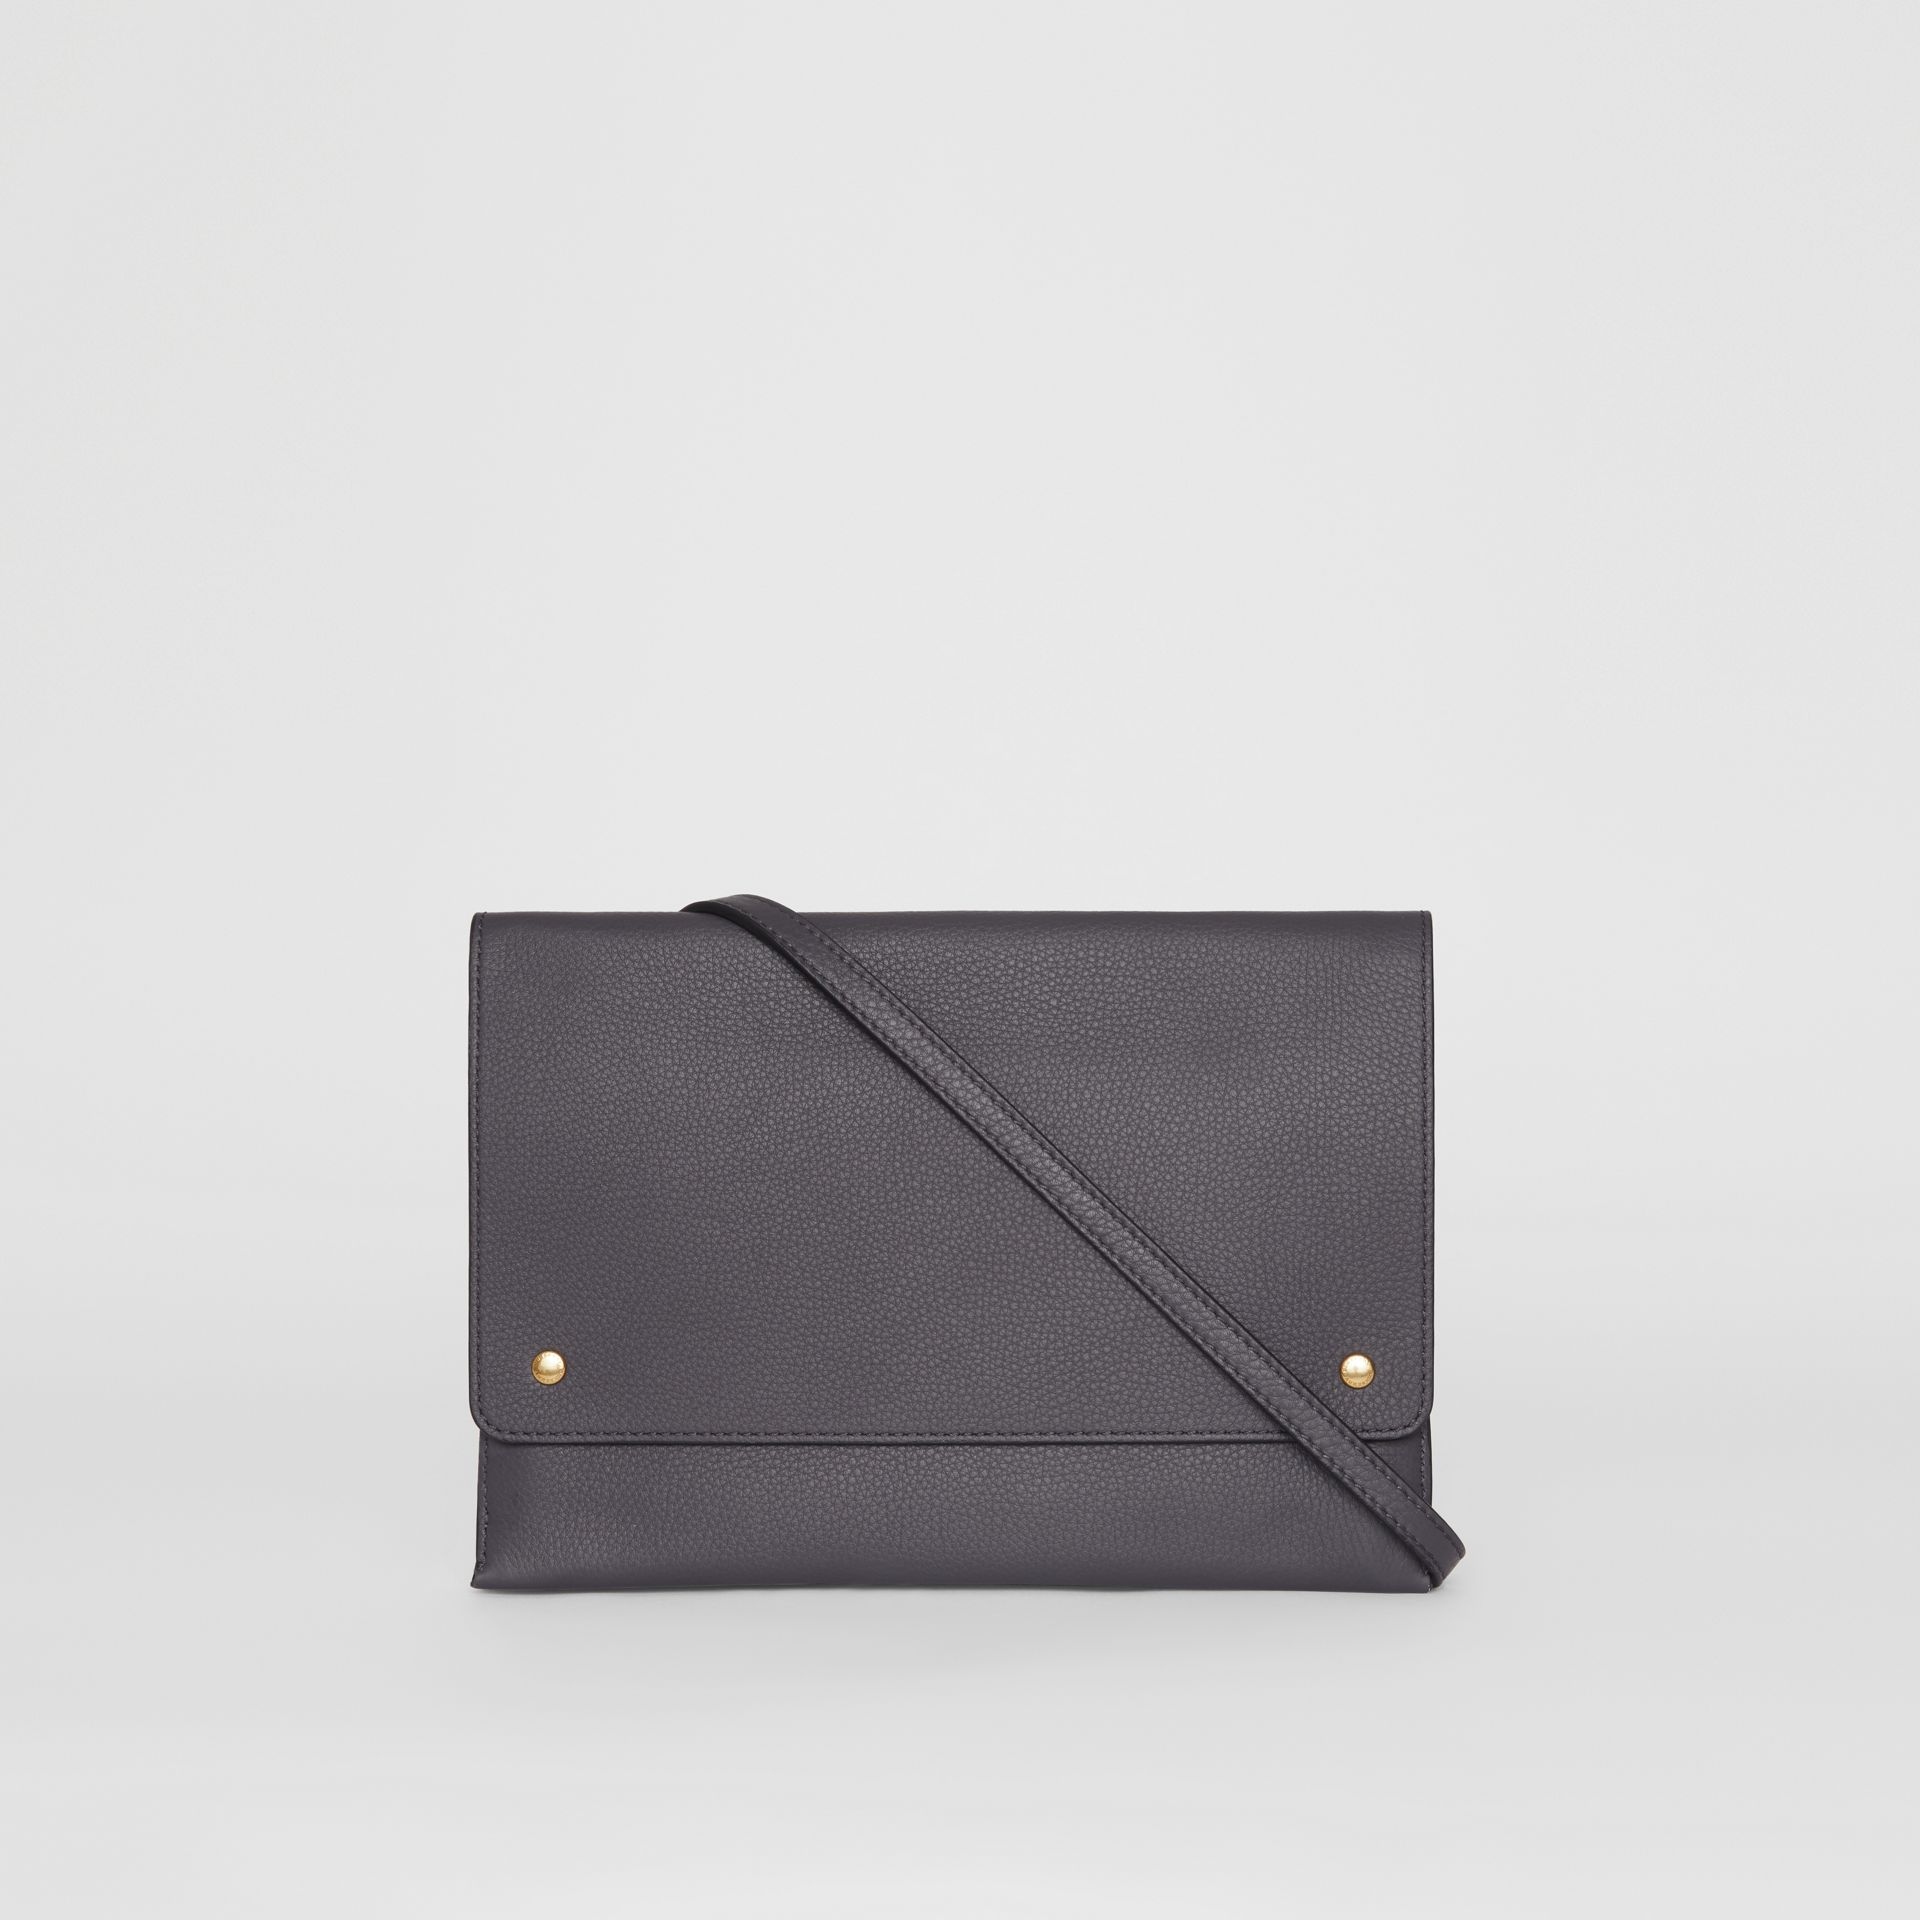 Leather Pouch with Detachable Strap in Charcoal Grey - Women | Burberry Canada - gallery image 5